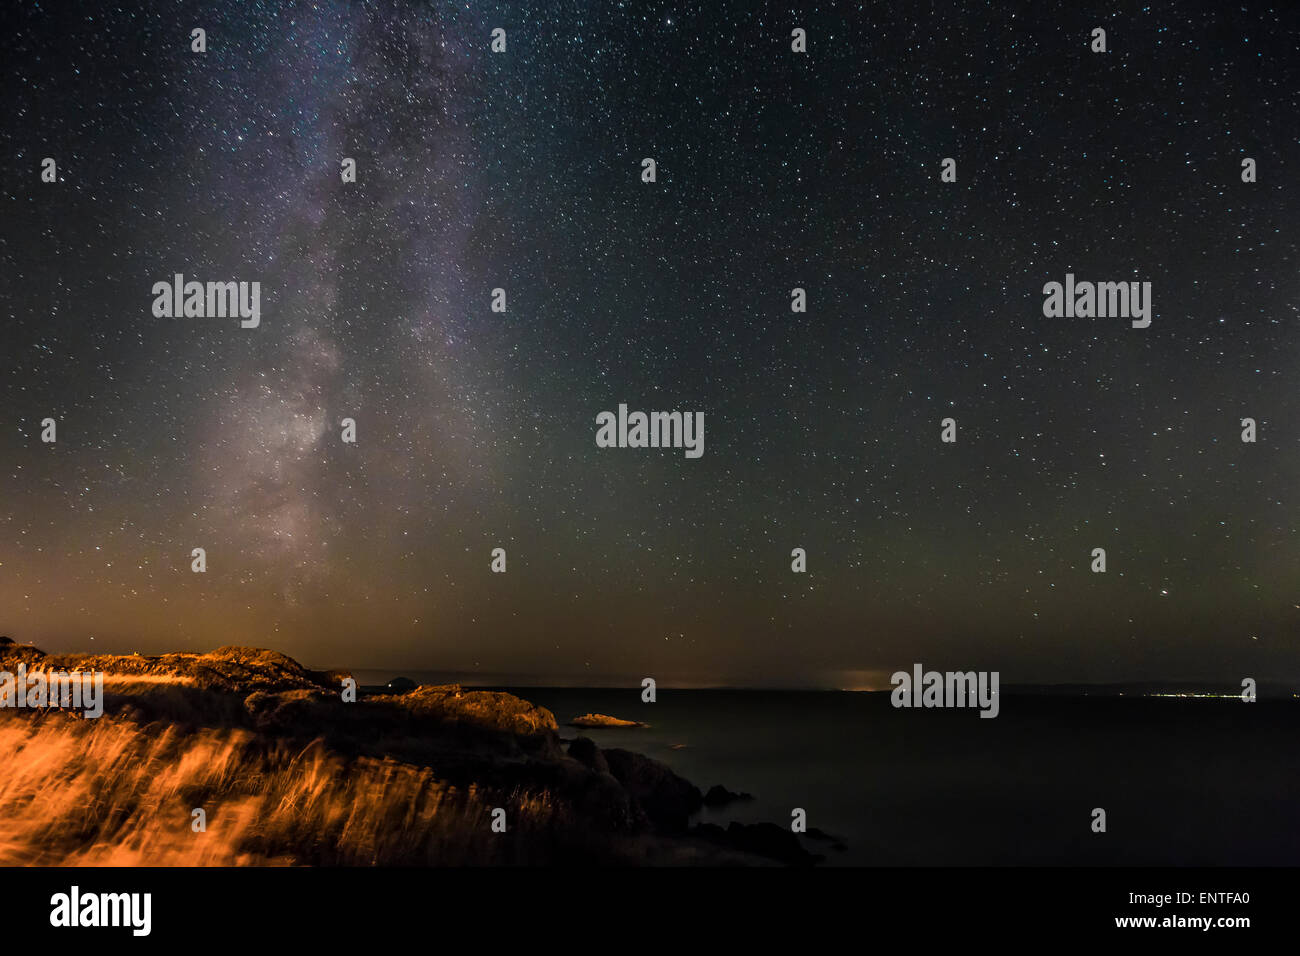 Milky Way Galaxy and stars in the night sky, Scotland, UK - Stock Image